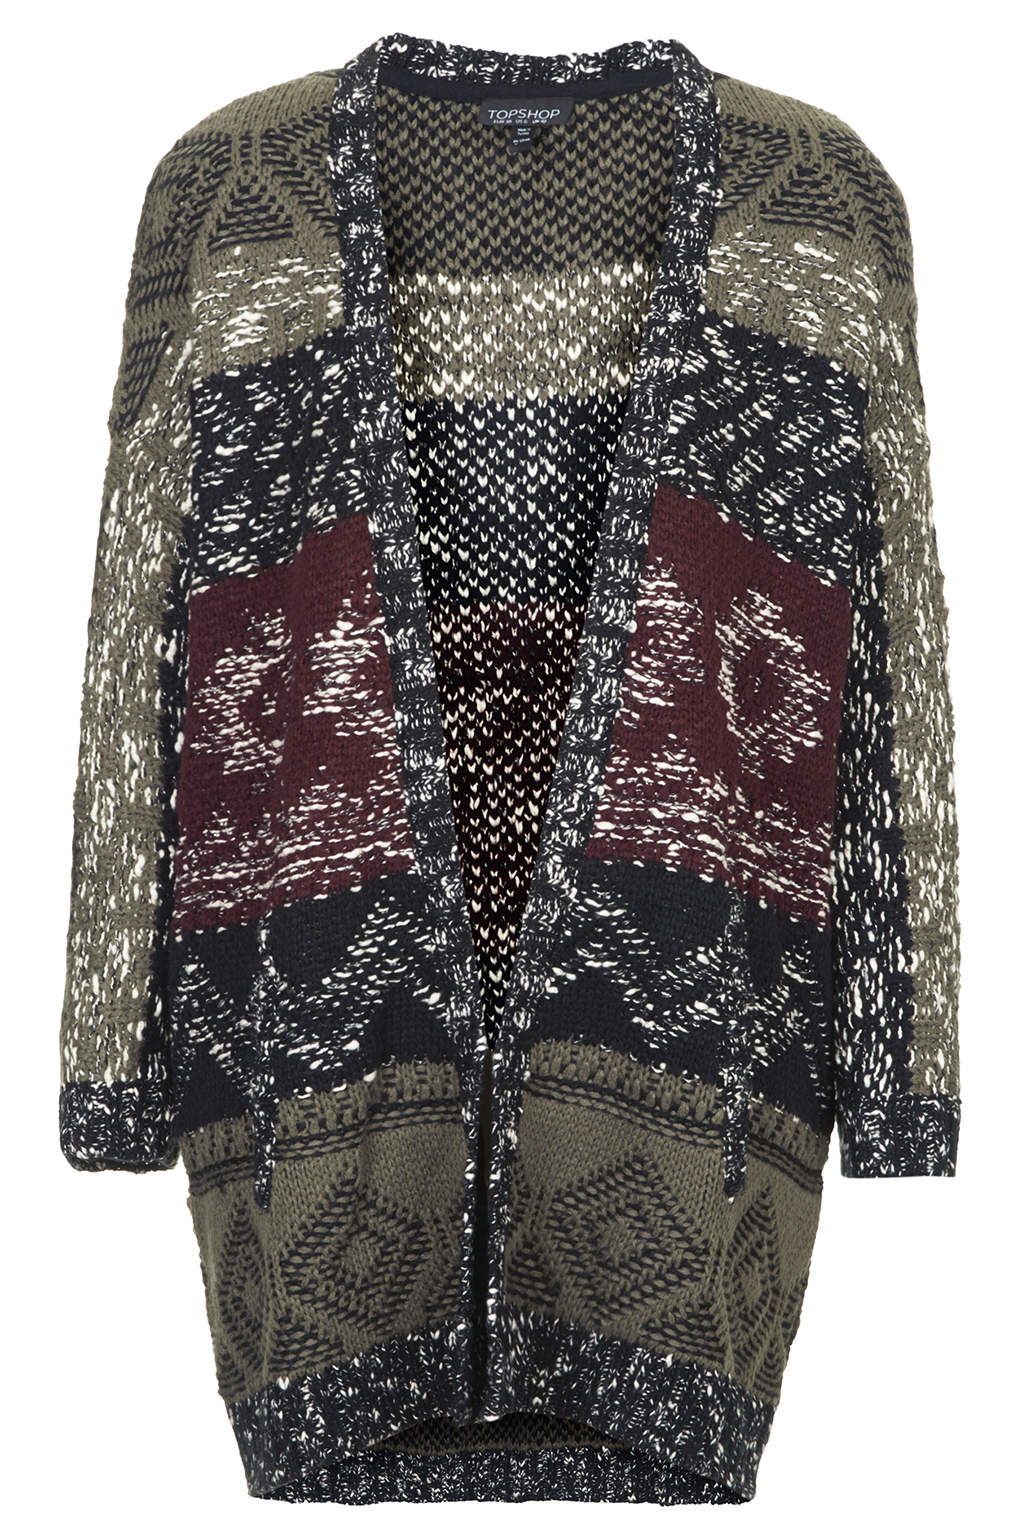 http://www.topshop.com/en/tsuk/product/clothing-427/knitwear-444/cardigans-569/patterned-slouchy-cardigan-3245080?refinements=category~%5b209739%7c208525%5d&bi=21&ps=20